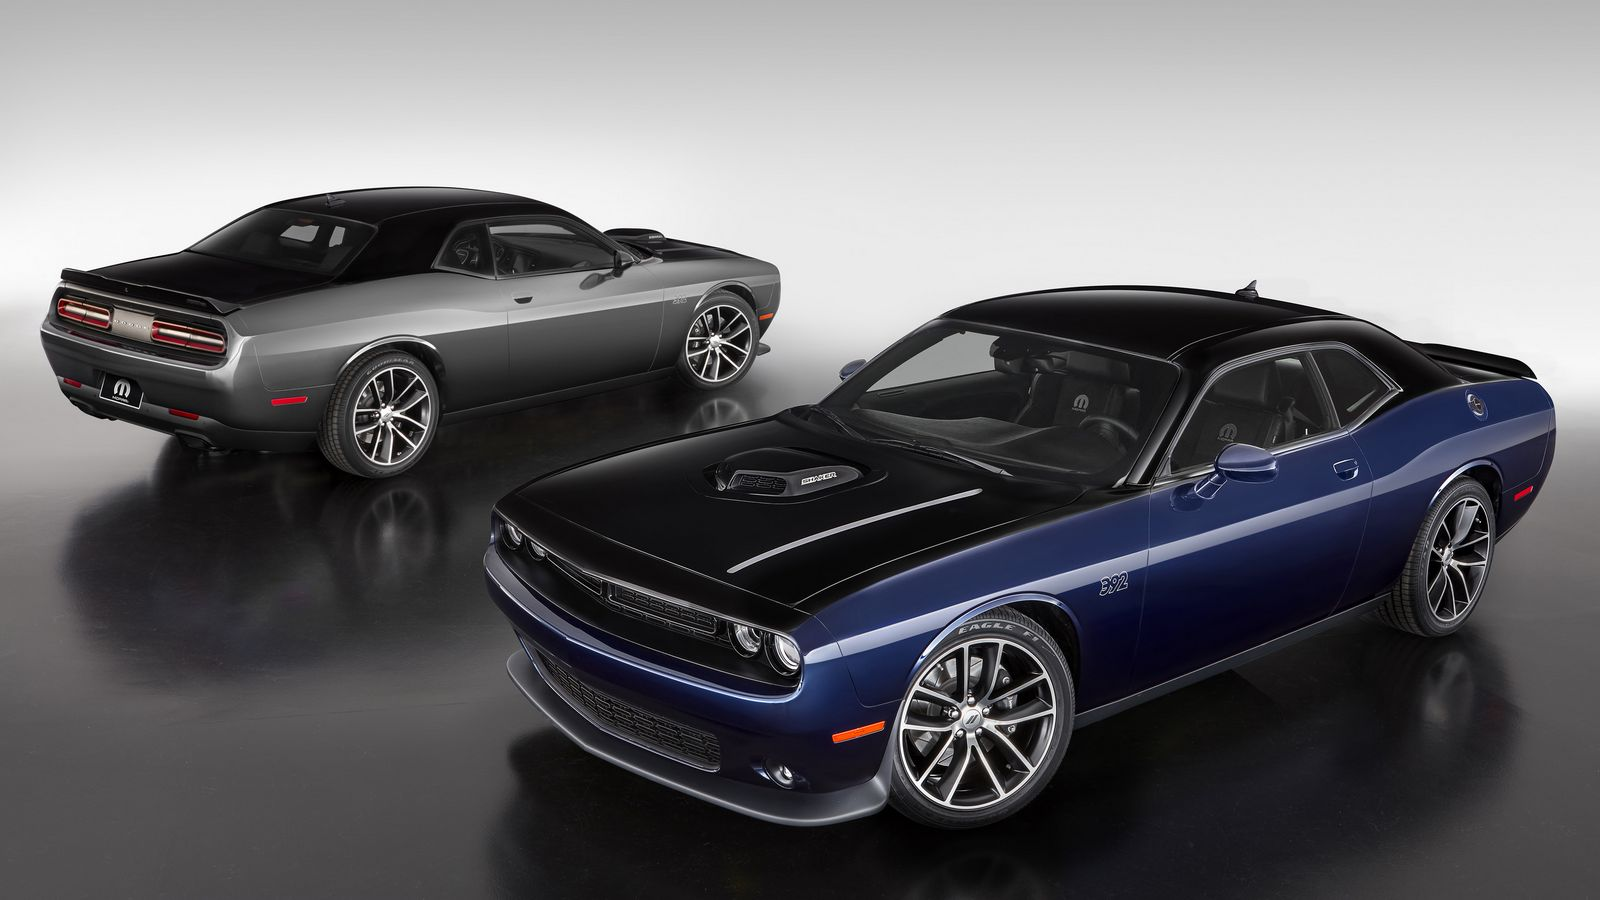 Mopar 2017 Dodge Challenger HD Wallpapers Download free images and photos [musssic.tk]